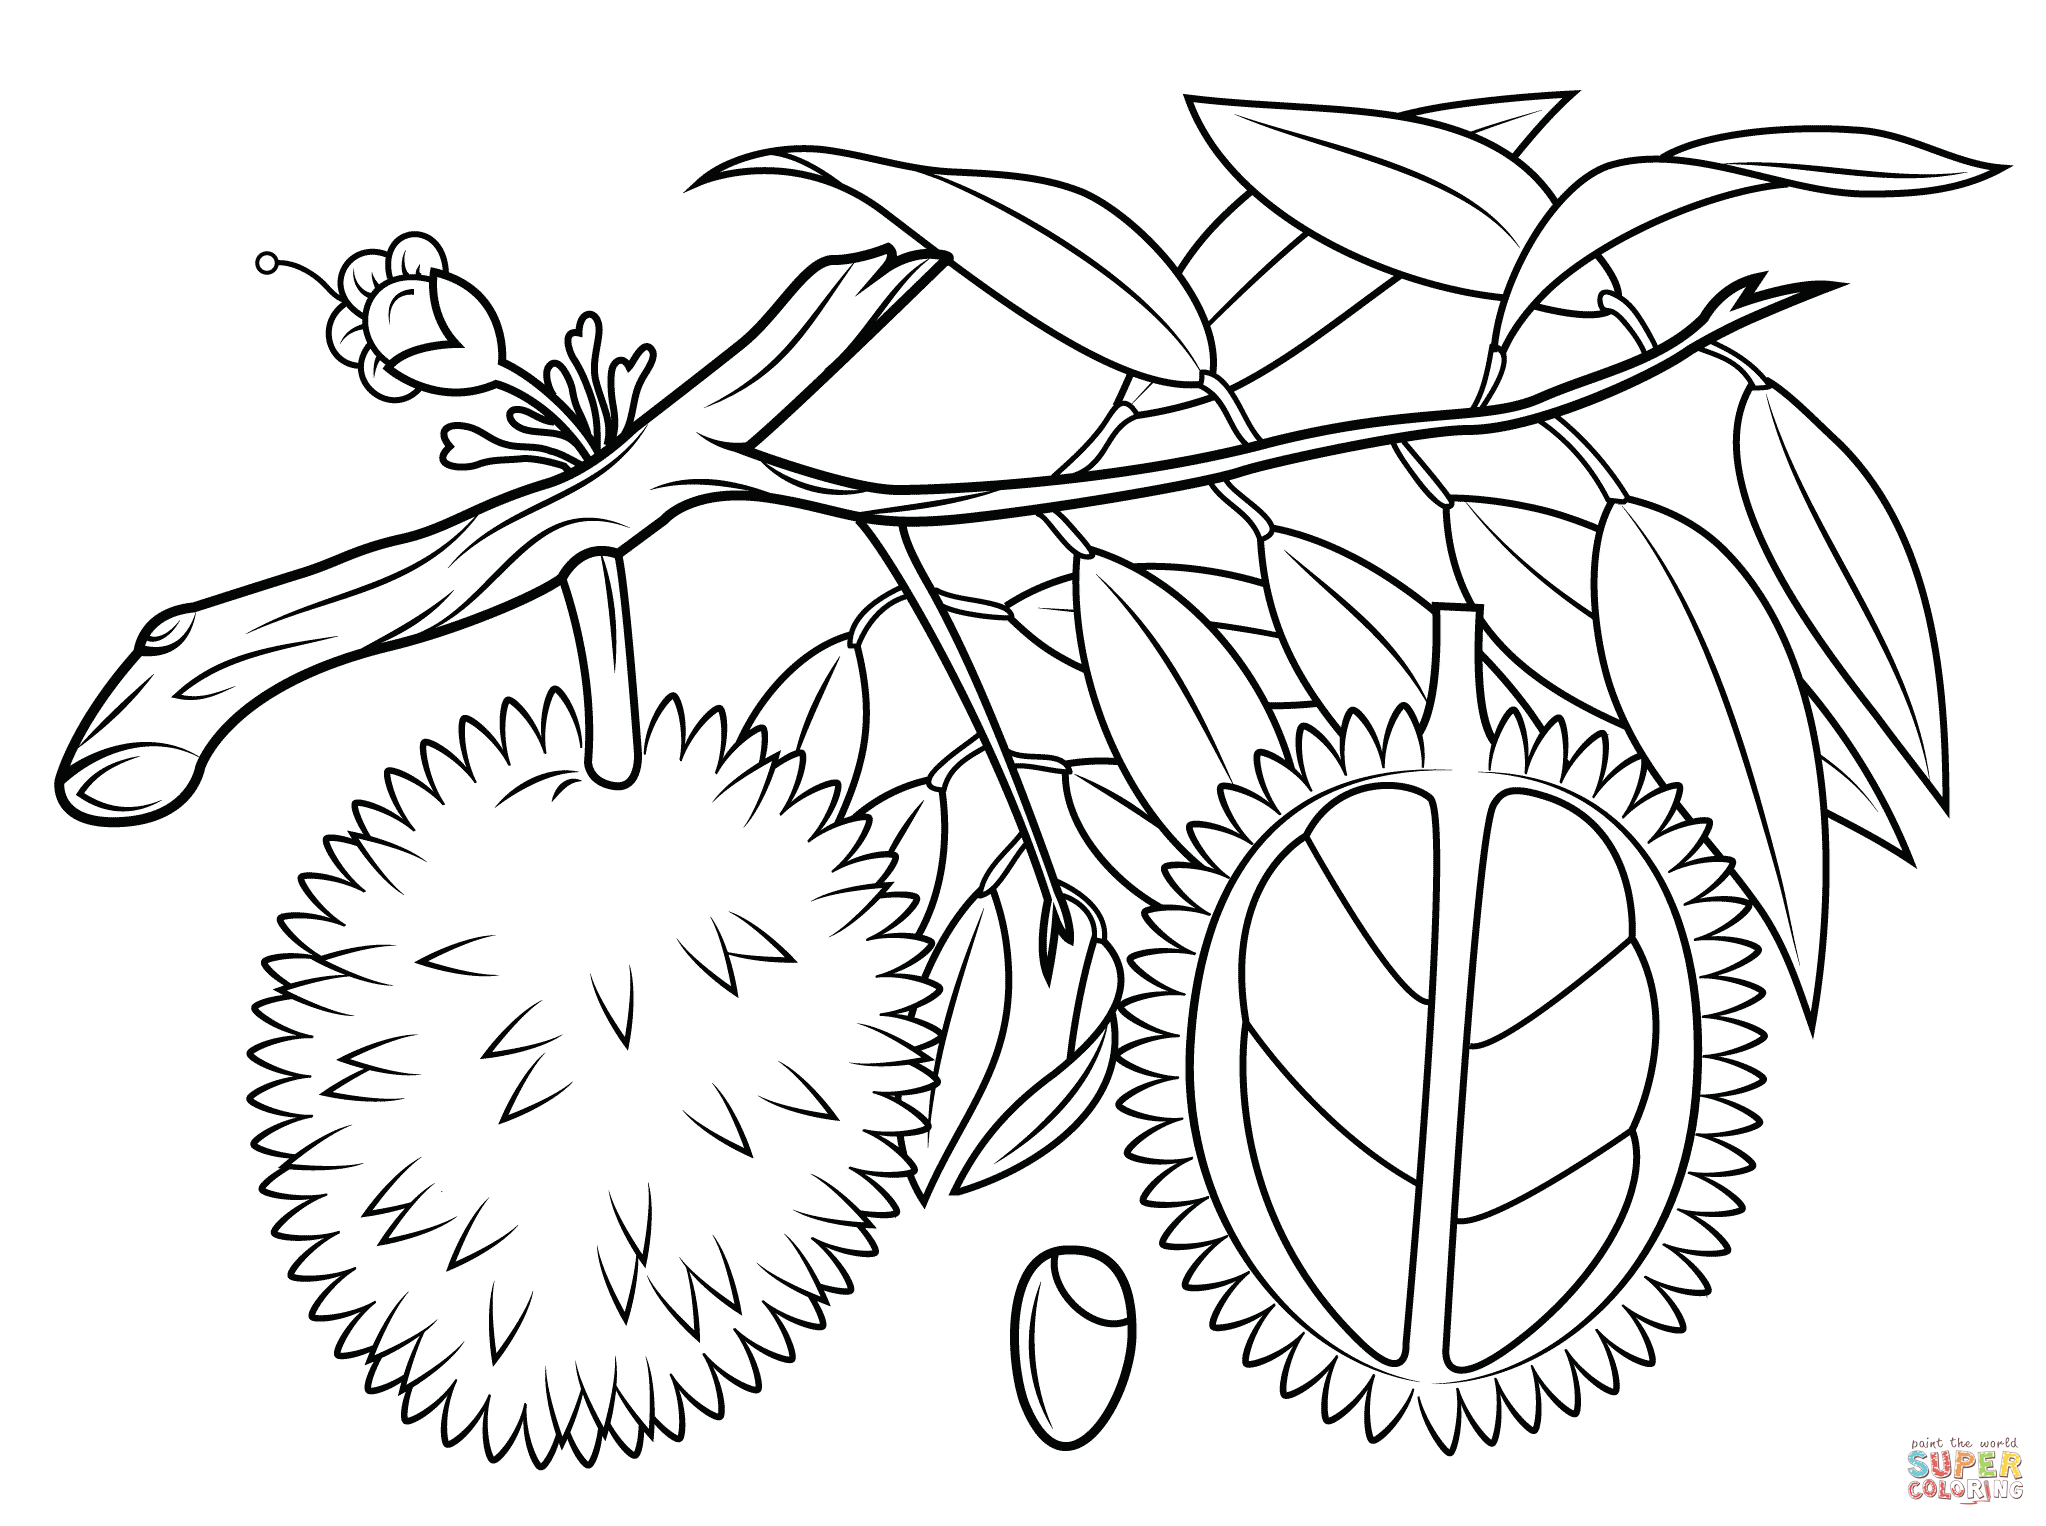 2046x1526 New Durian Branch Cross Section And Seed Coloring Page